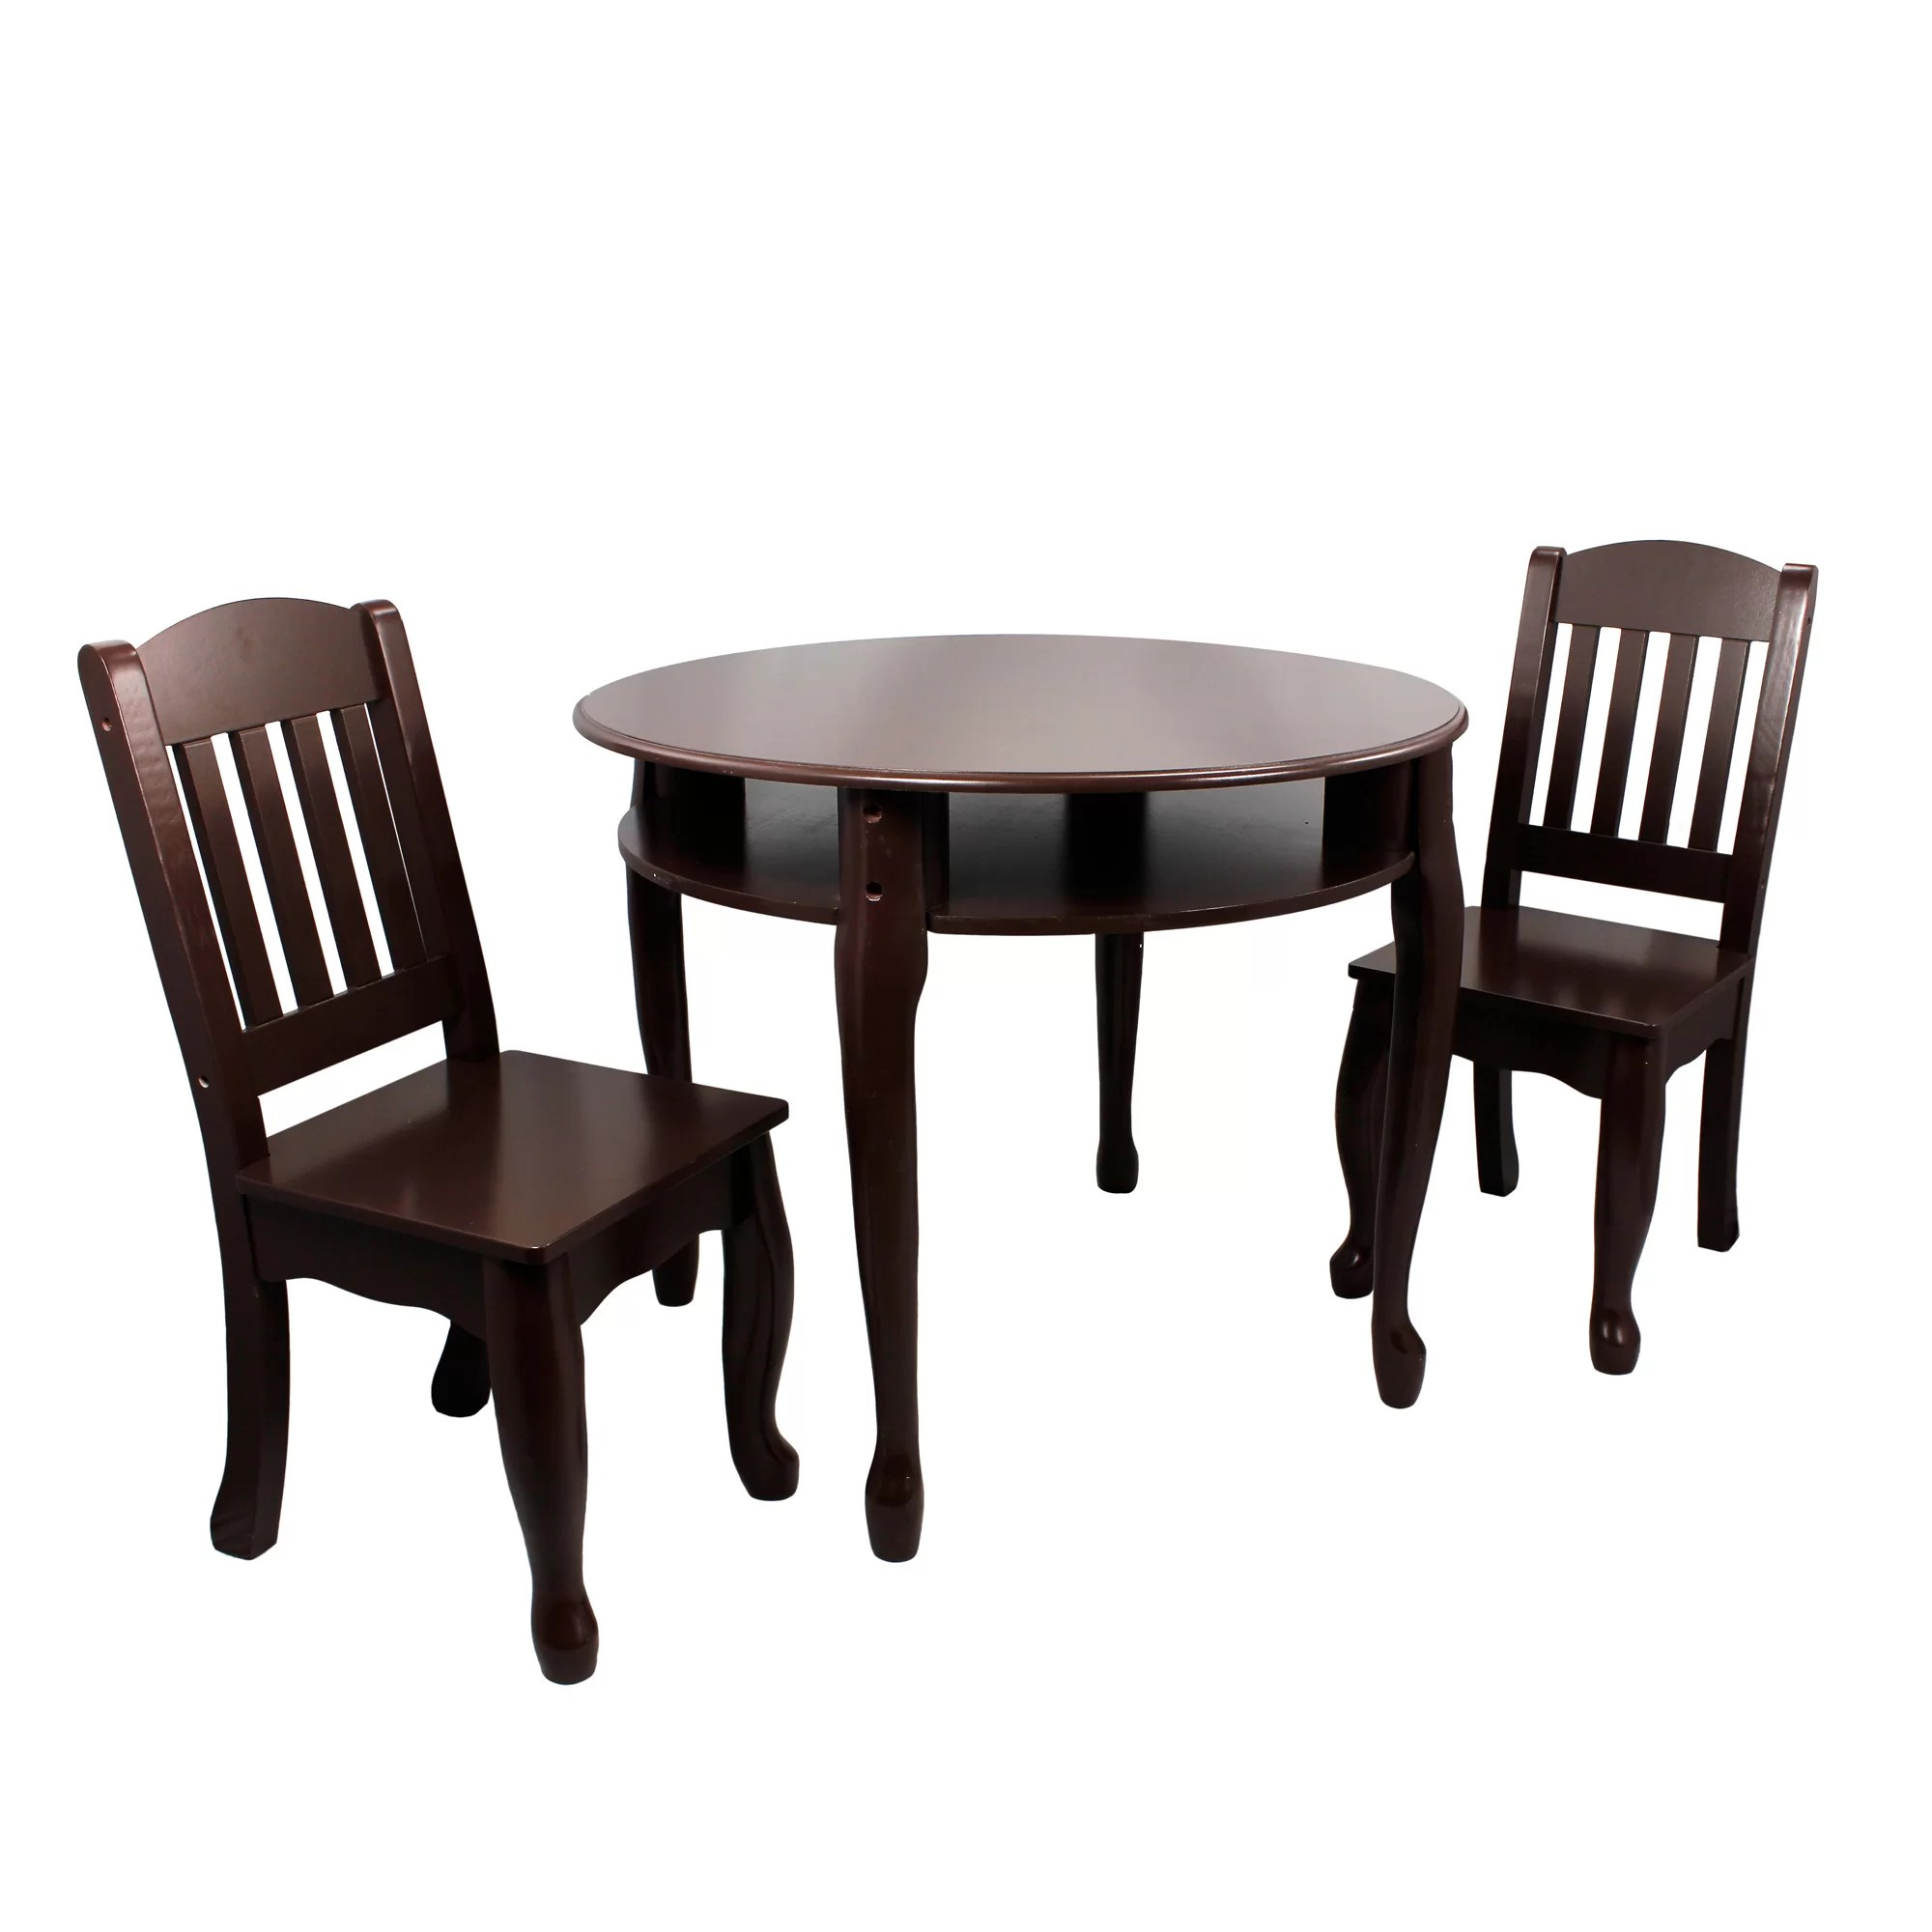 Round Table And Chair Set Teamson Kids Windsor 3 Piece Round Table And Chair Set